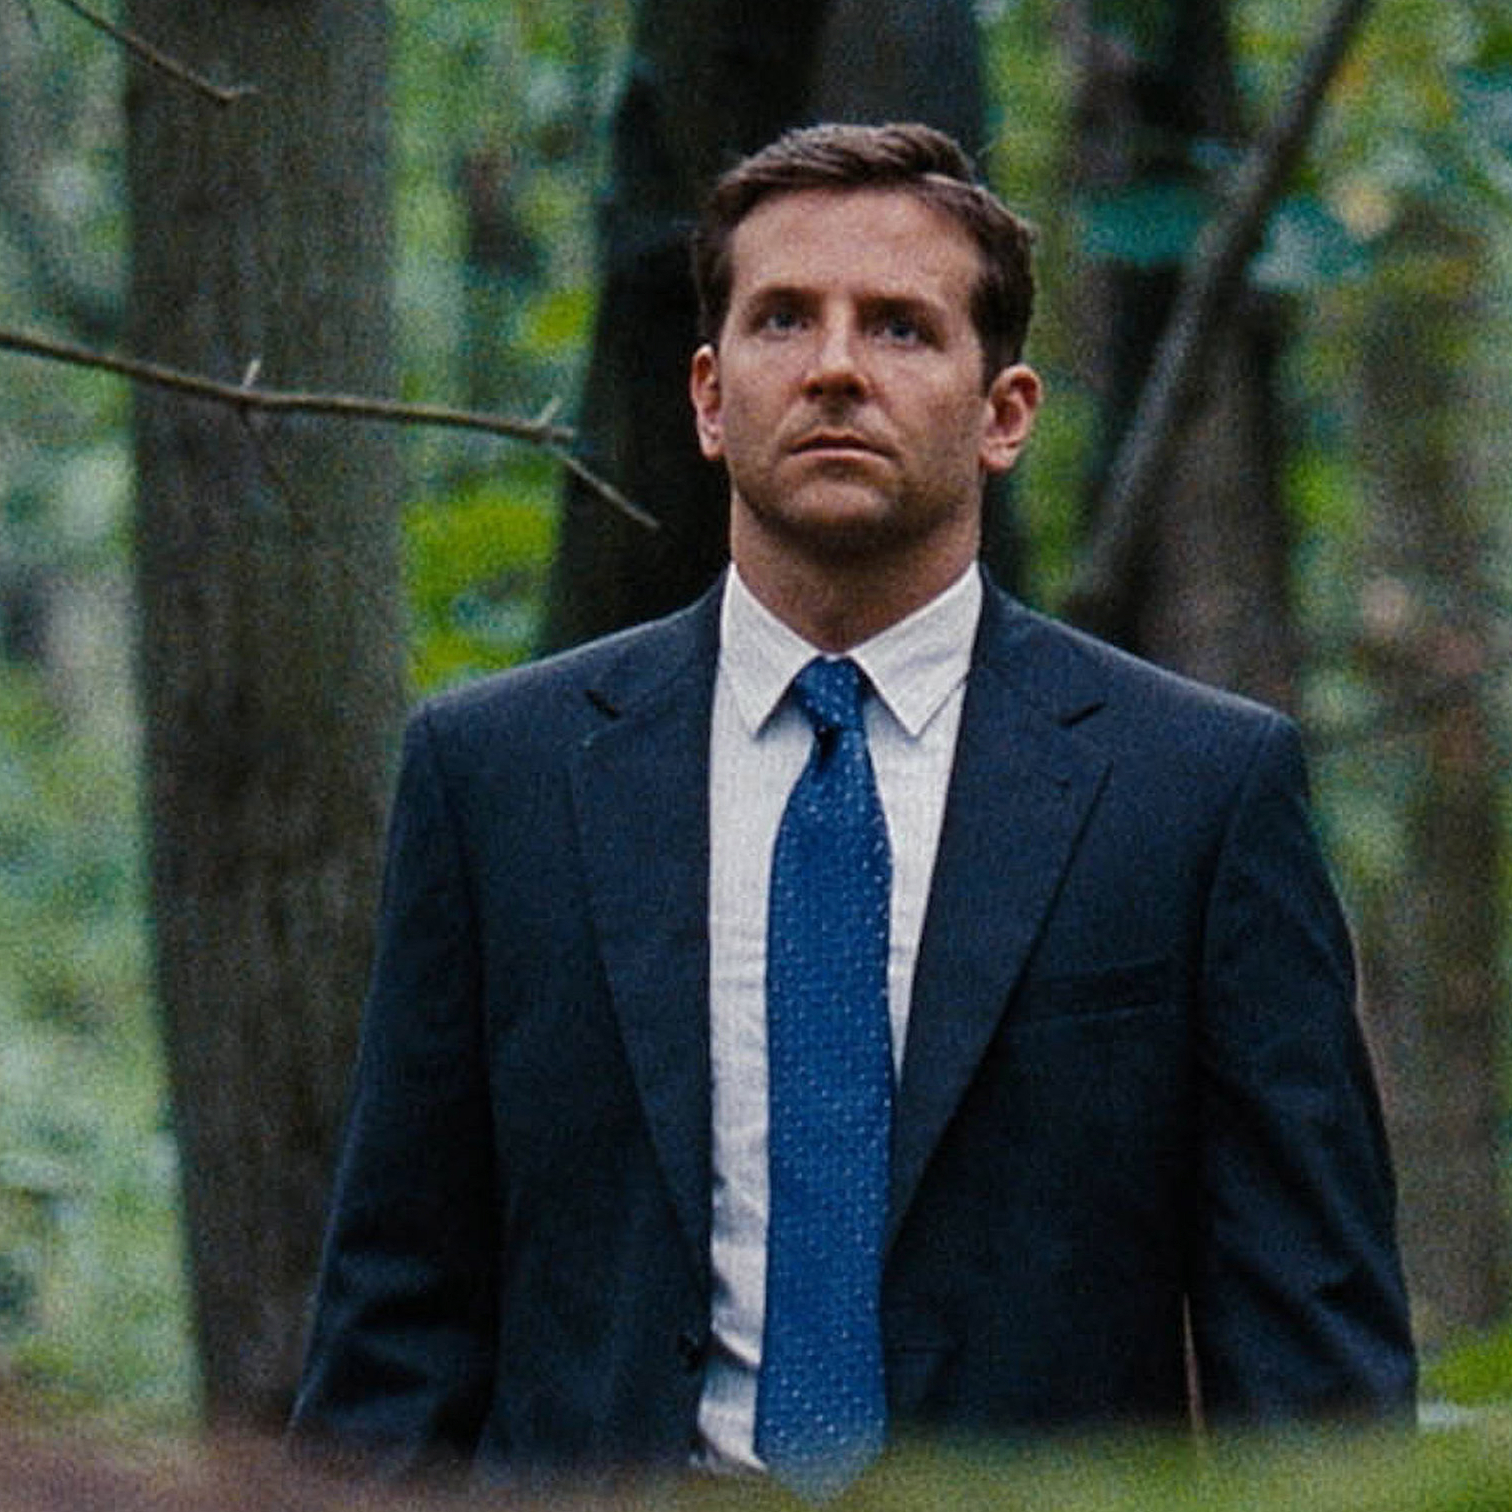 Avery (Bradley Cooper), a law-school graduate and small-town lawman, hopes to use a high-profile case to advance his political ambitions.